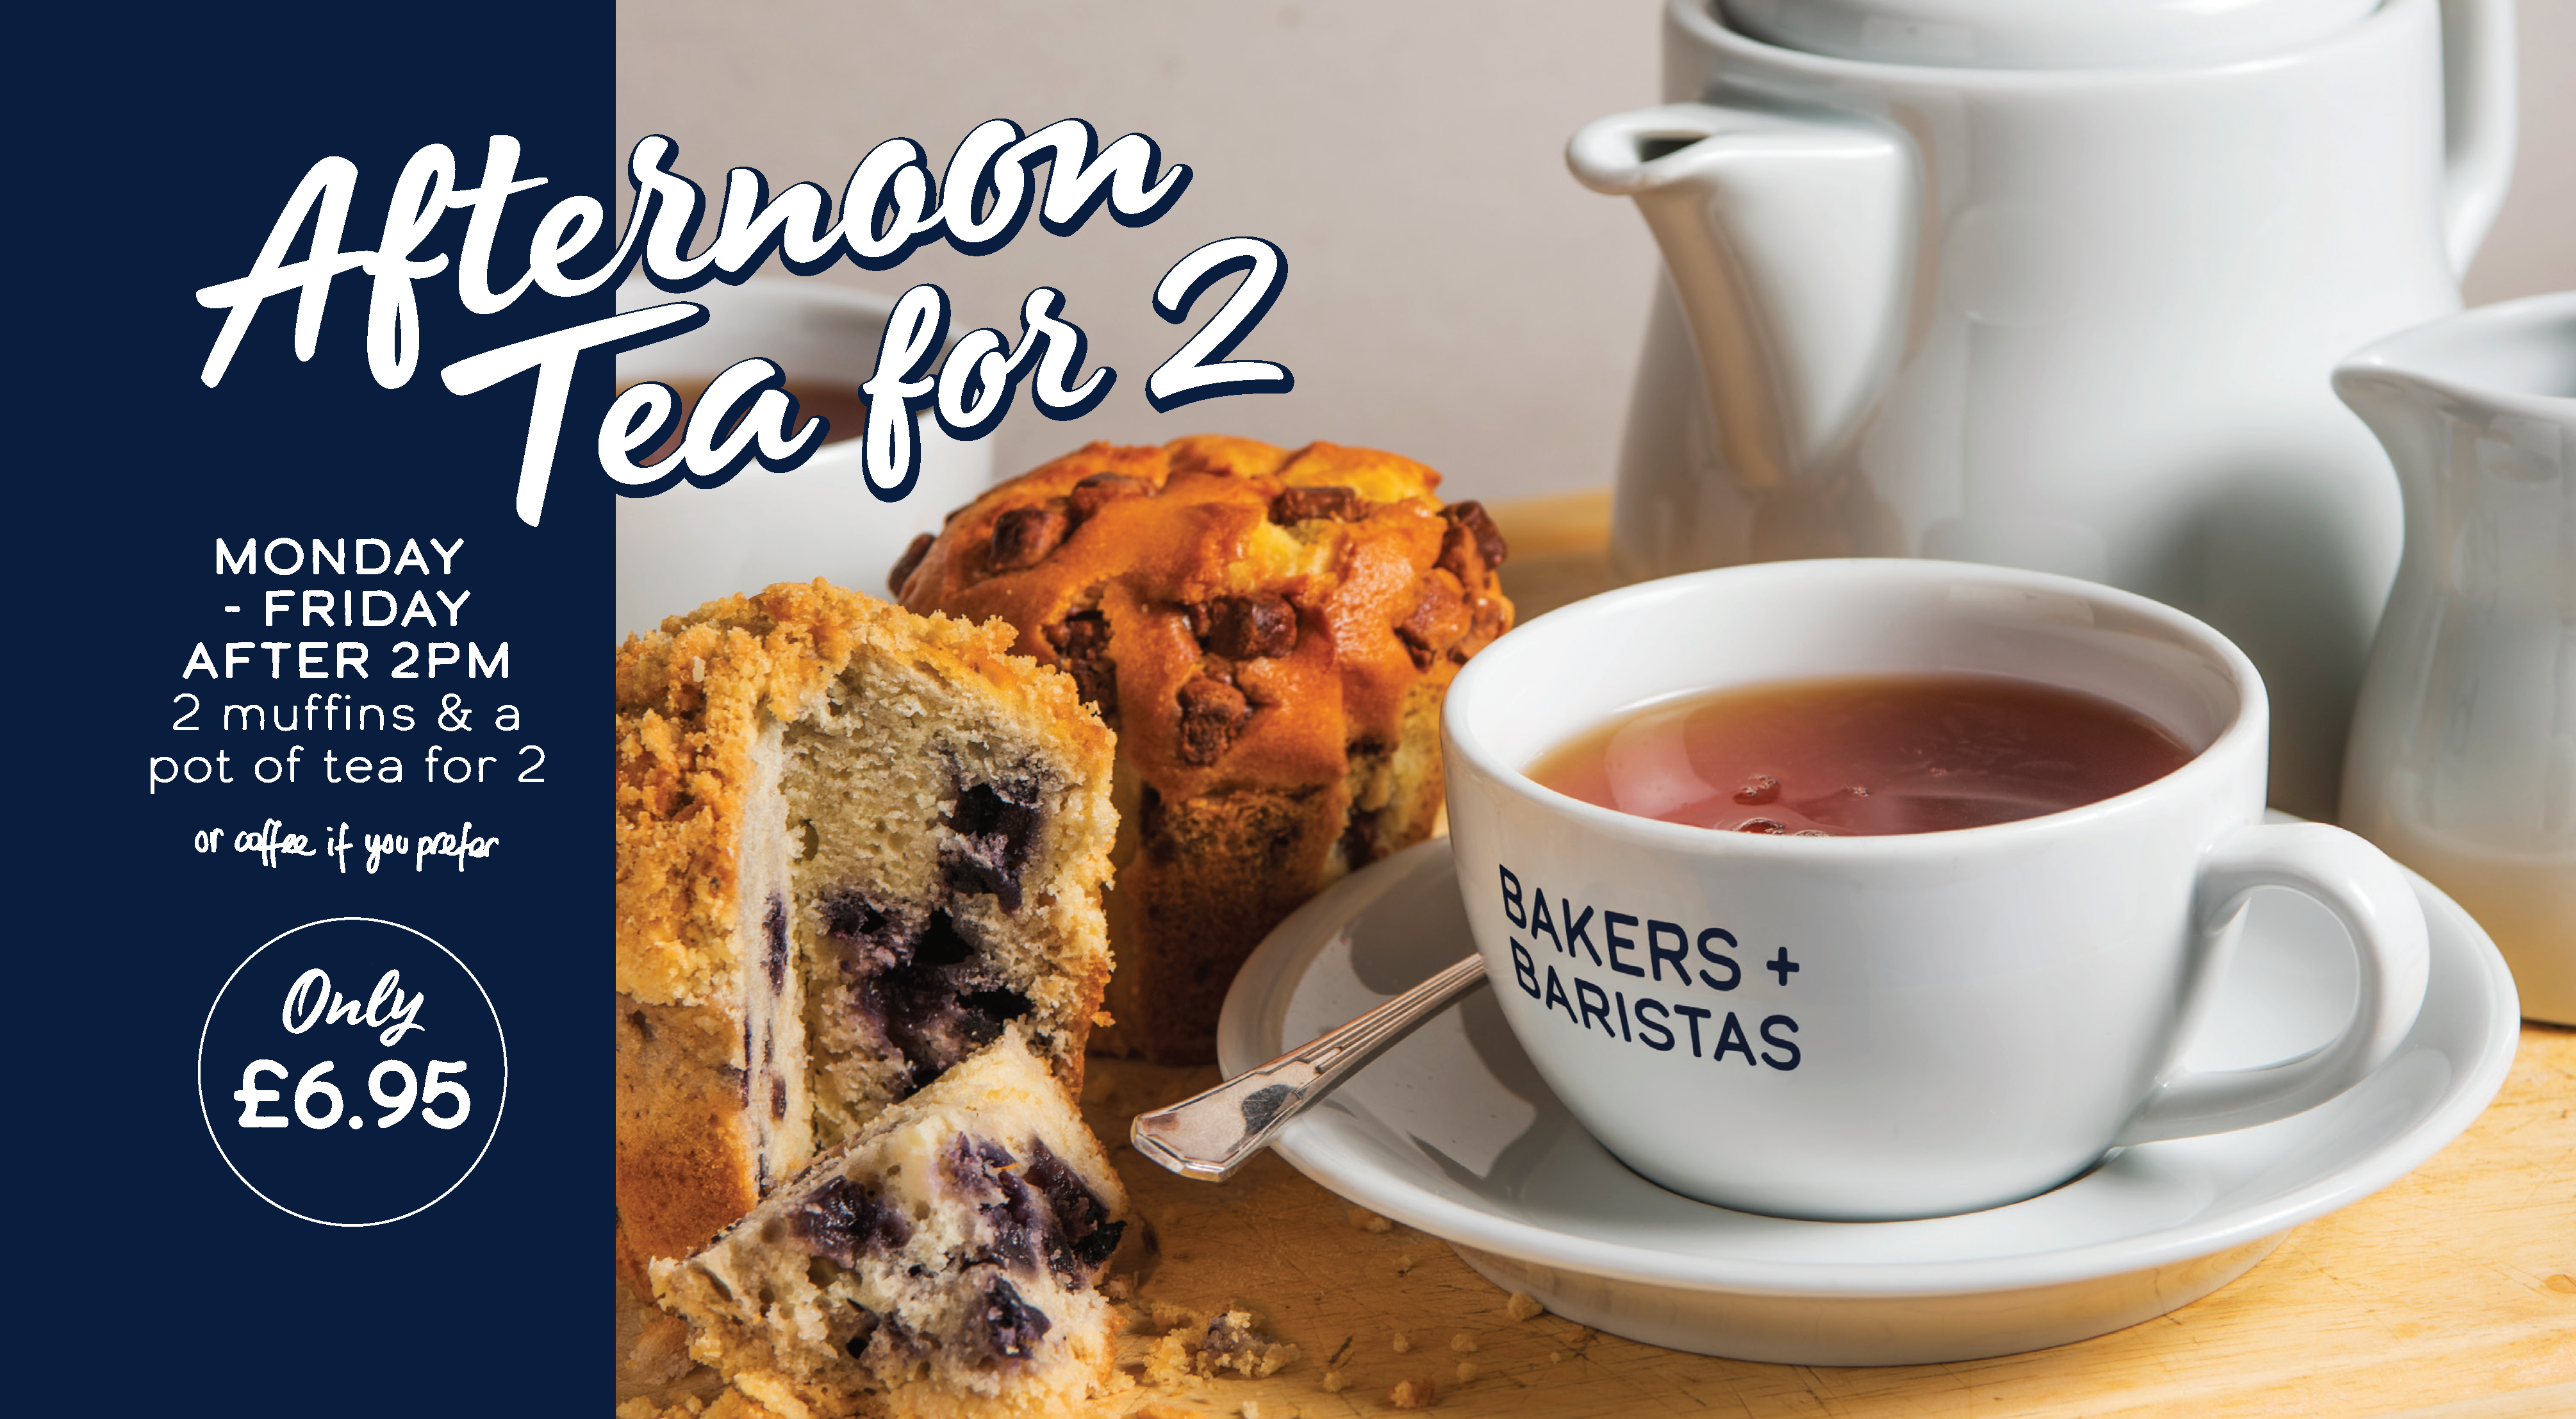 Spring Afternoon Tea offer